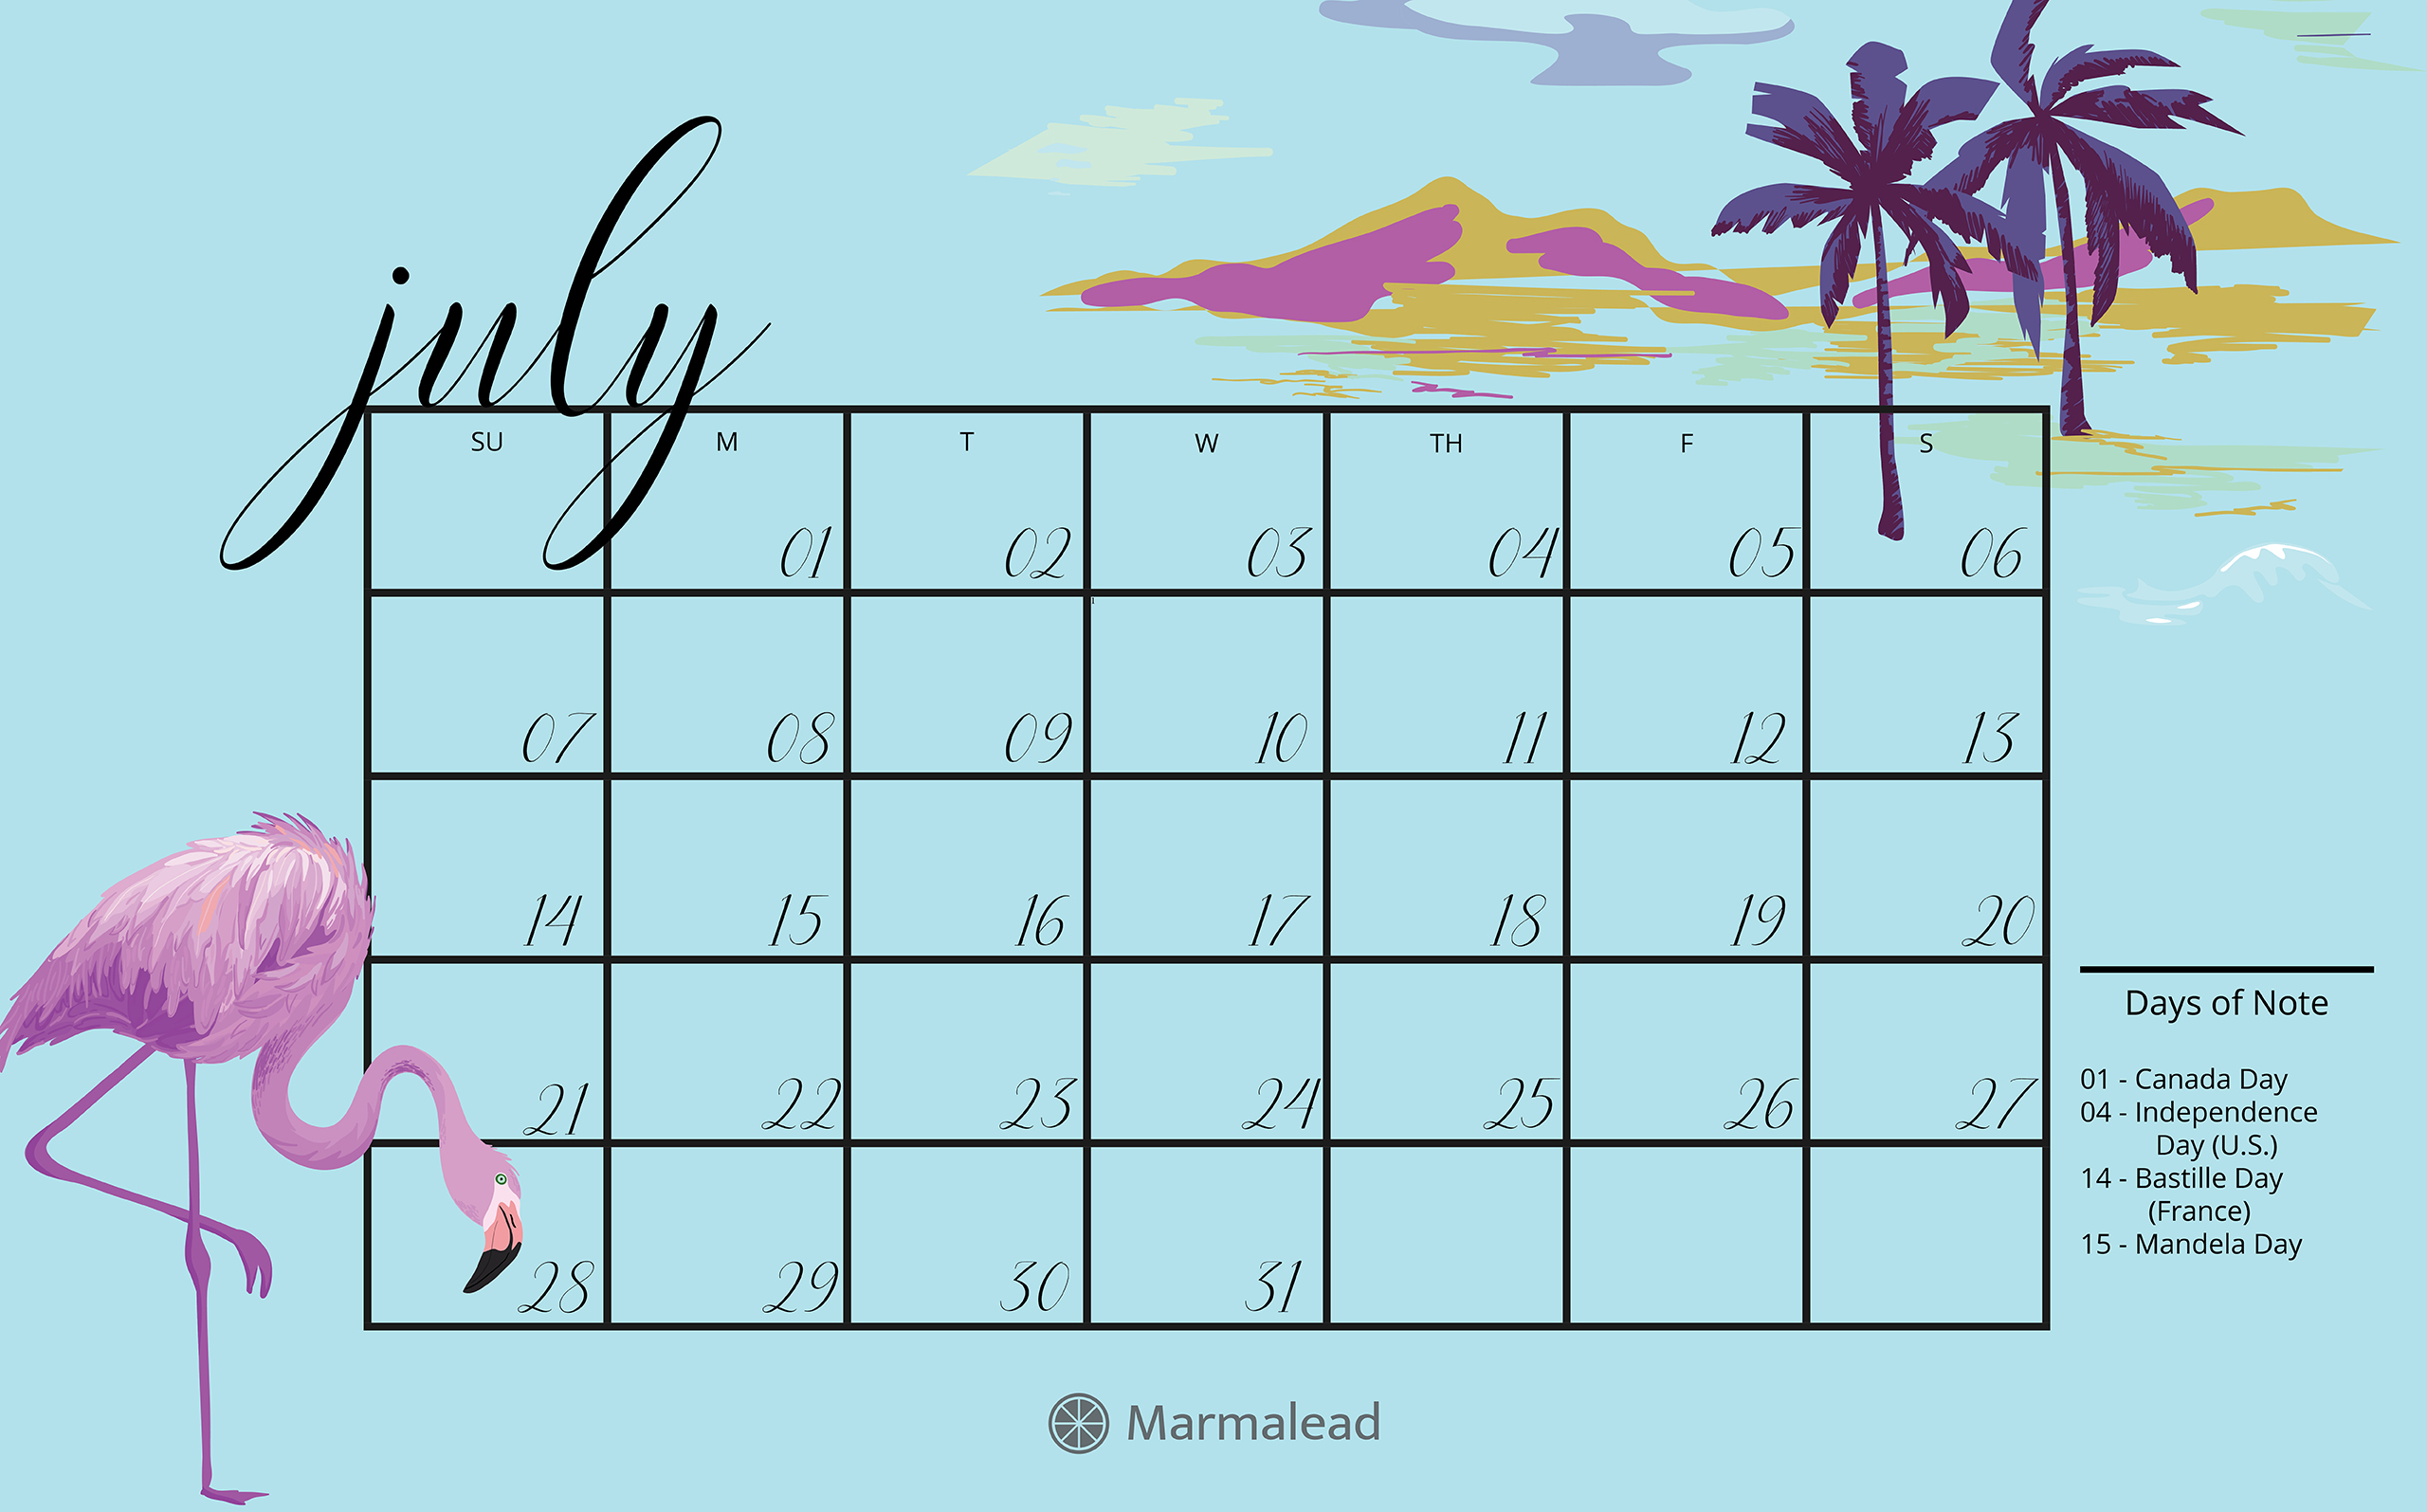 By having this application launch upon logging in to your computer, you can have a calendar on your mac computer's desktop from startup. Q3 2019 Free Desktop Calendars from Marmalead